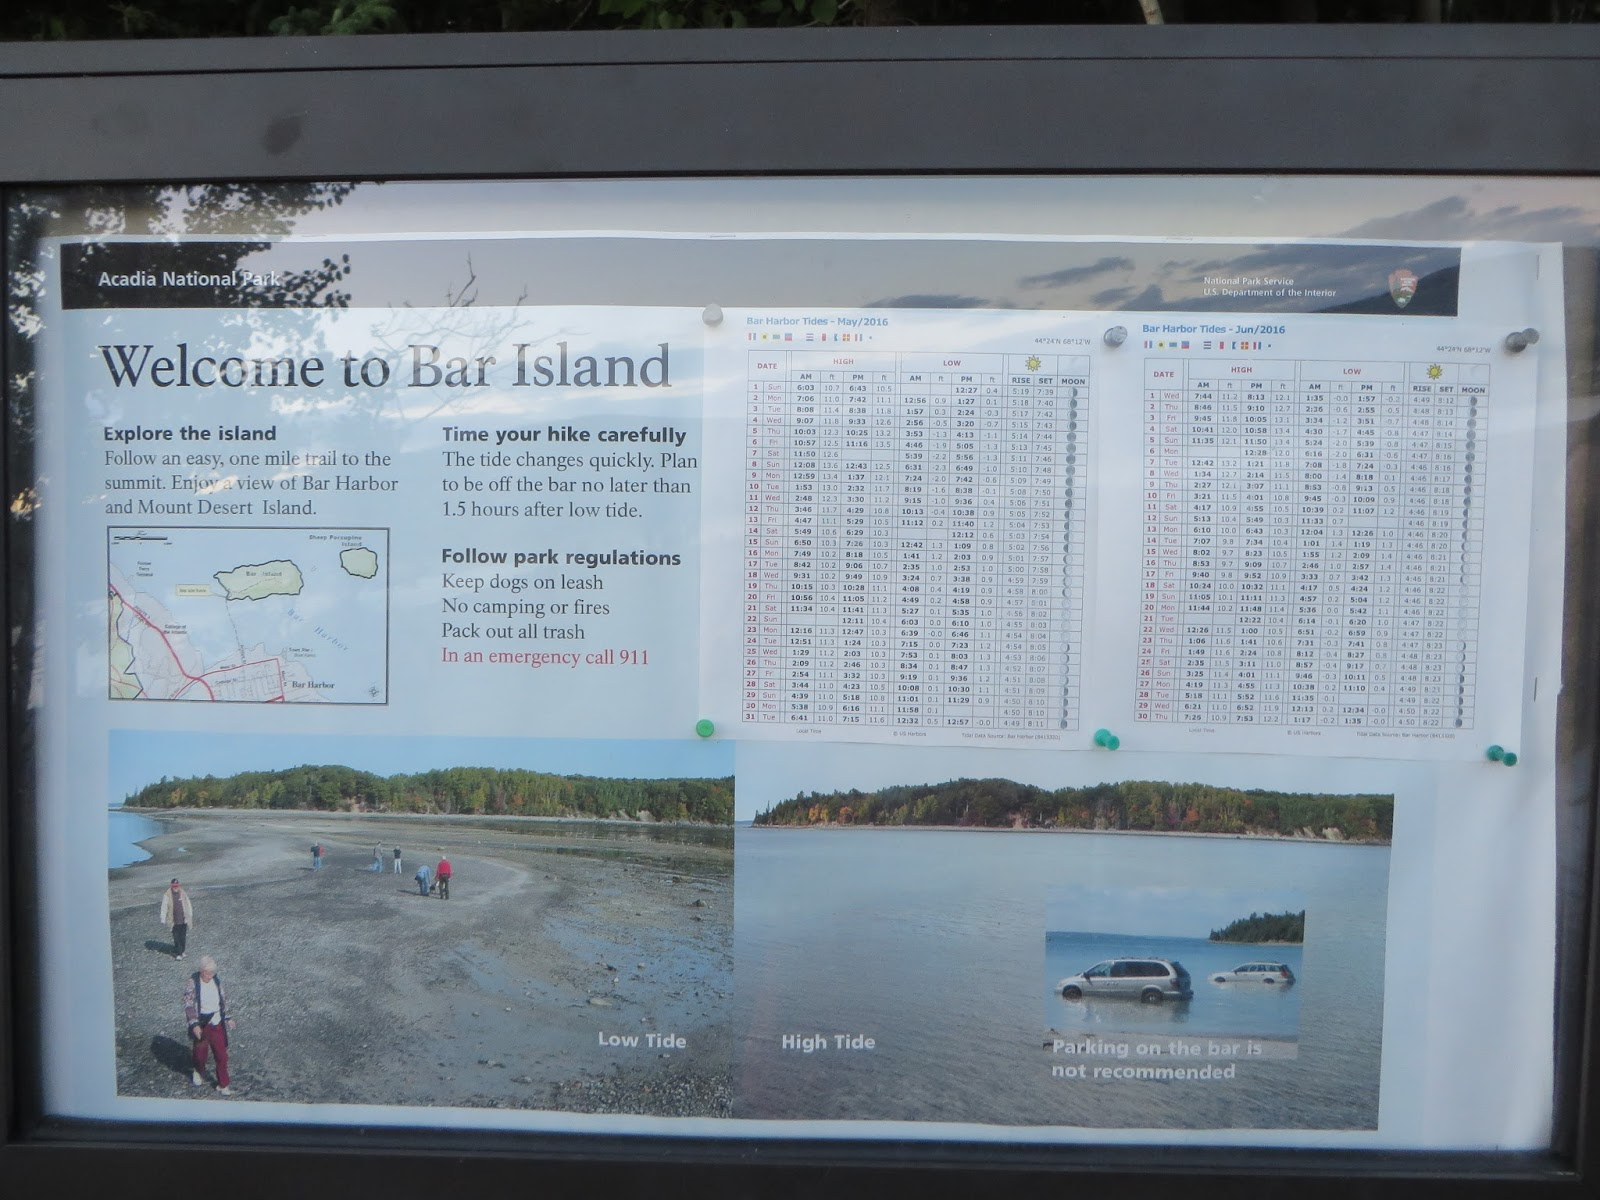 Tide chart for bar harbor maine gallery free any chart examples tide chart for bar harbor maine choice image free any chart examples bar harbor tide chart nvjuhfo Choice Image